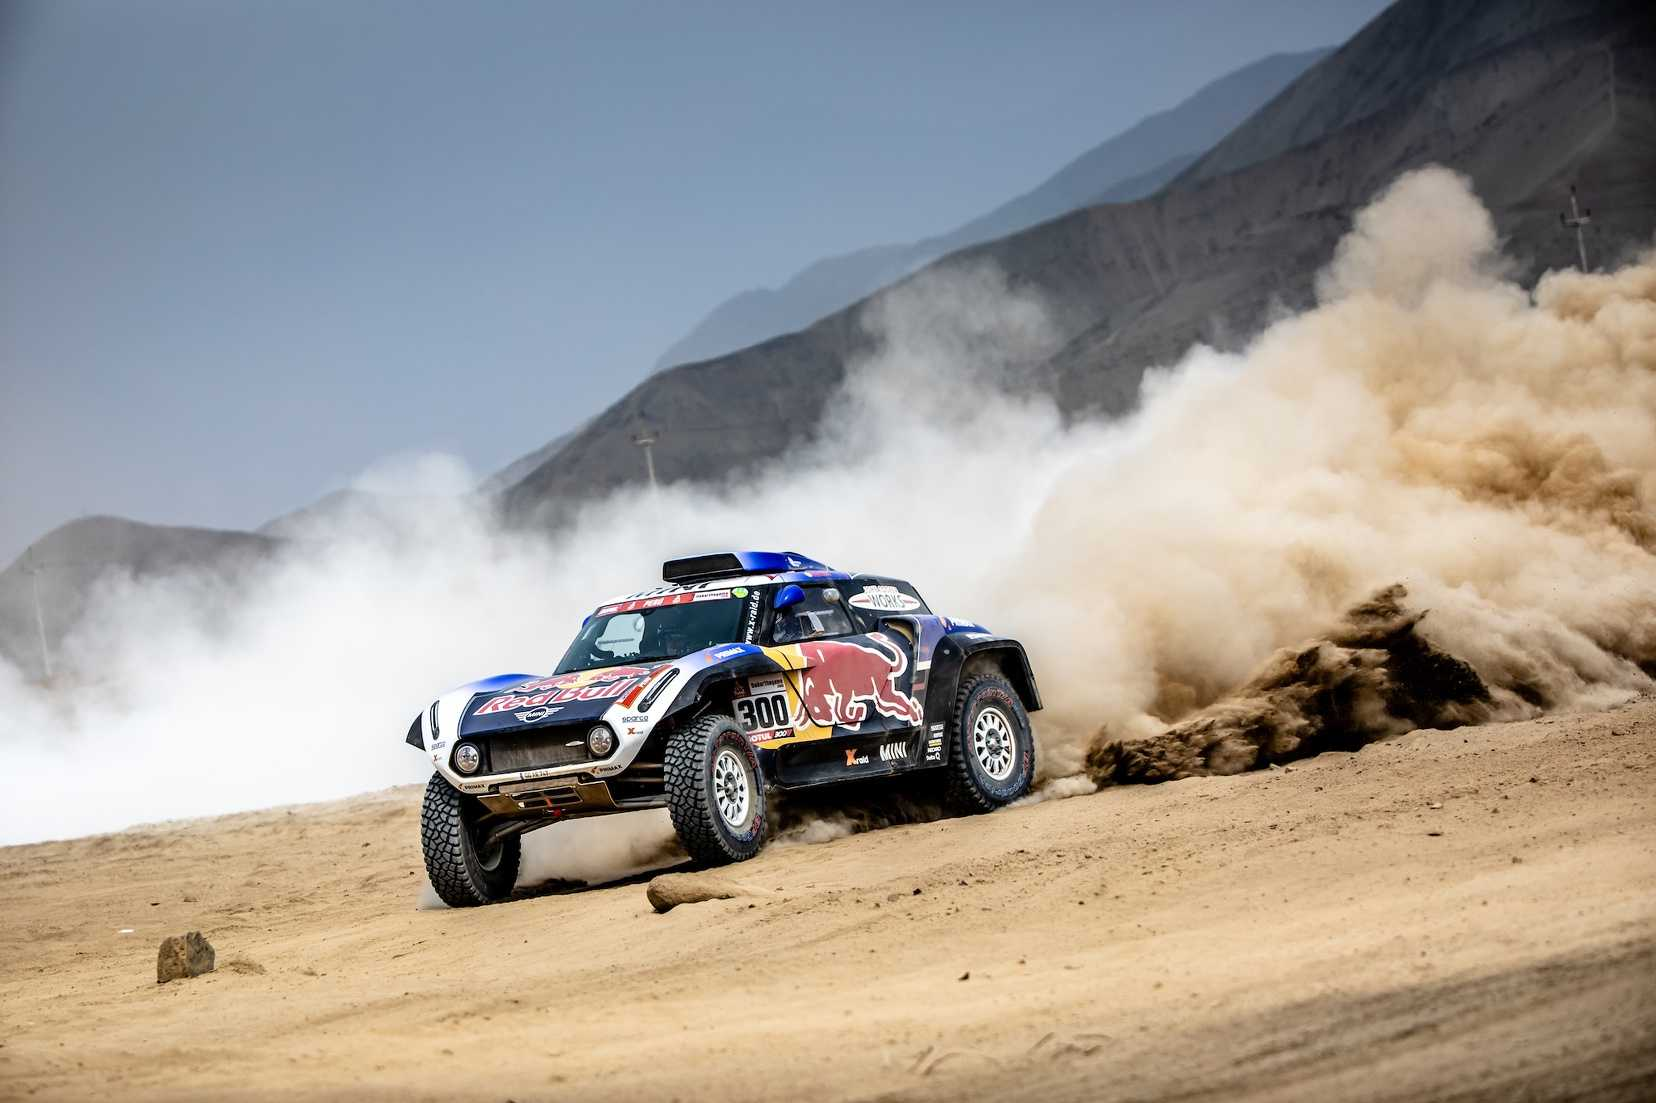 Dakar Rally 2019 – Stage 01, Lima - Pisco